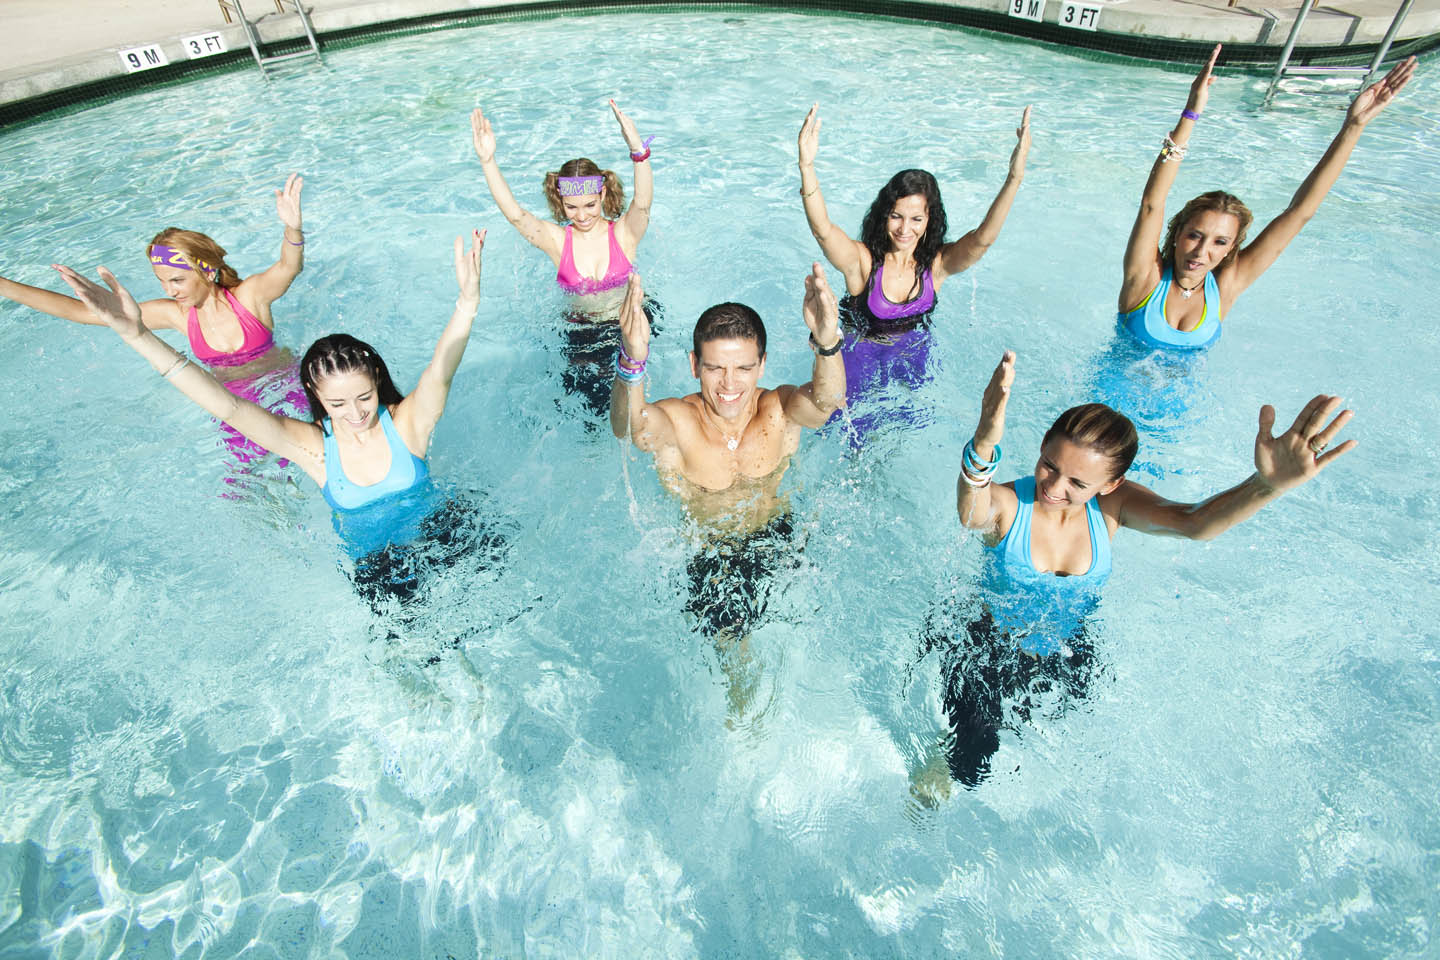 Water aerobics - exercises in the pool